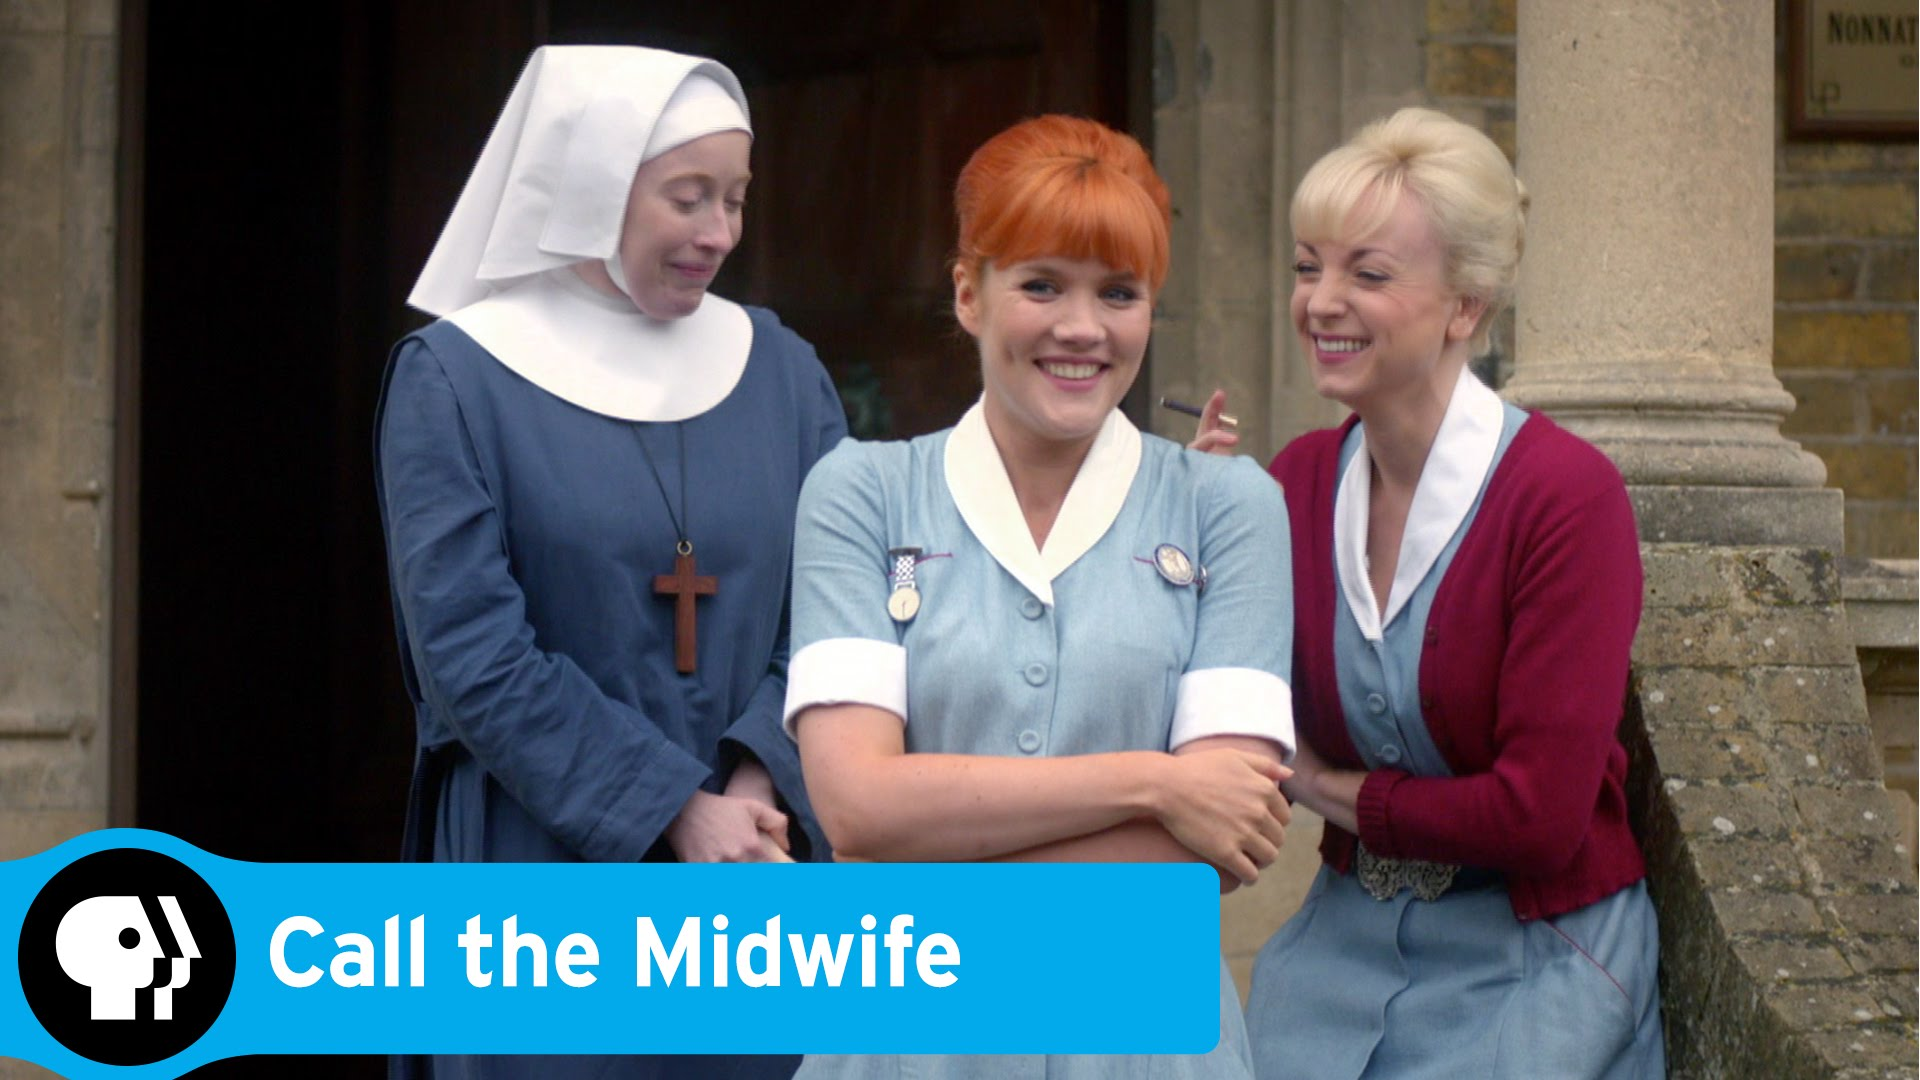 Call the Midwife: Sundays 8 p.m. through May 21